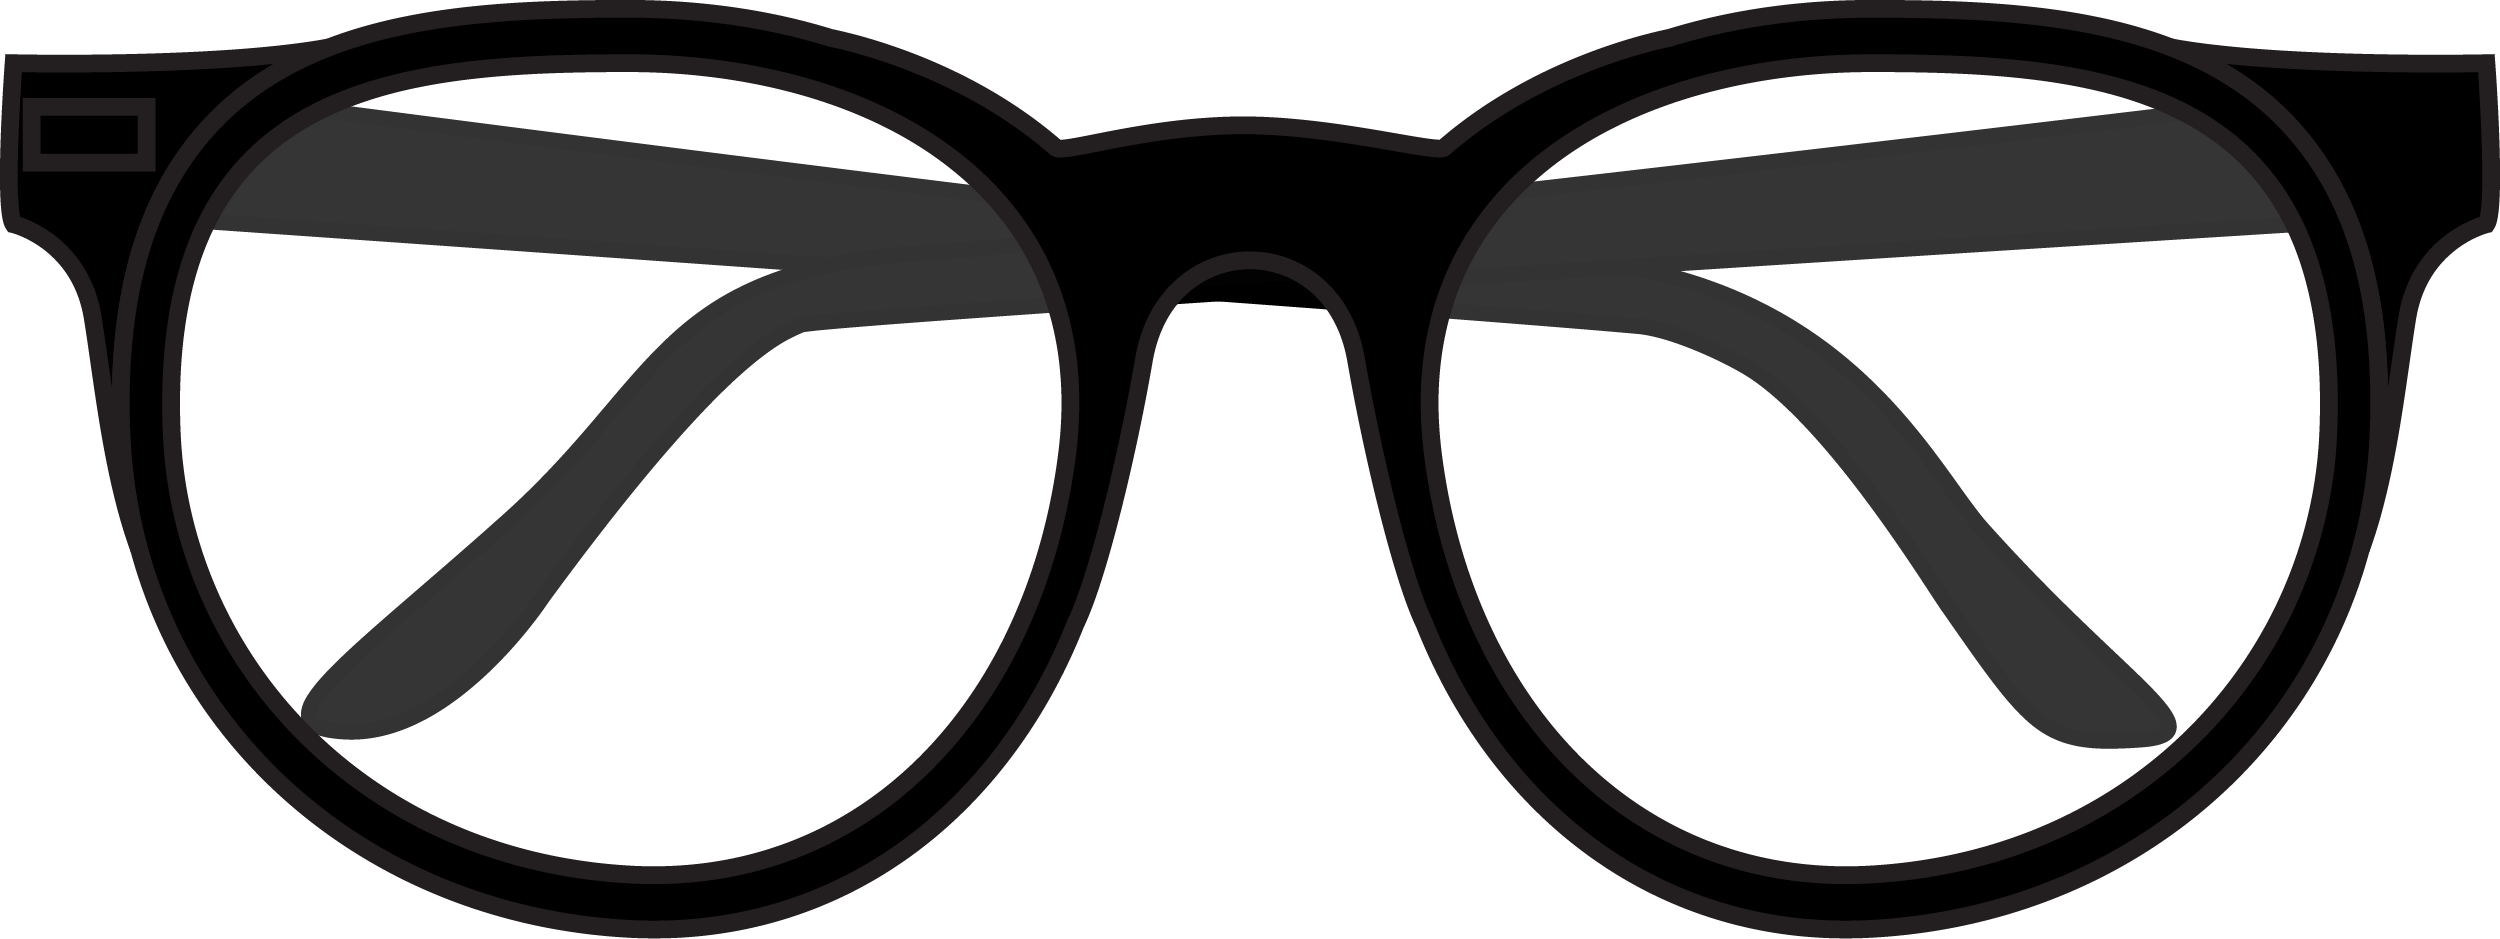 Spectacles Glasses Clip-art PNG